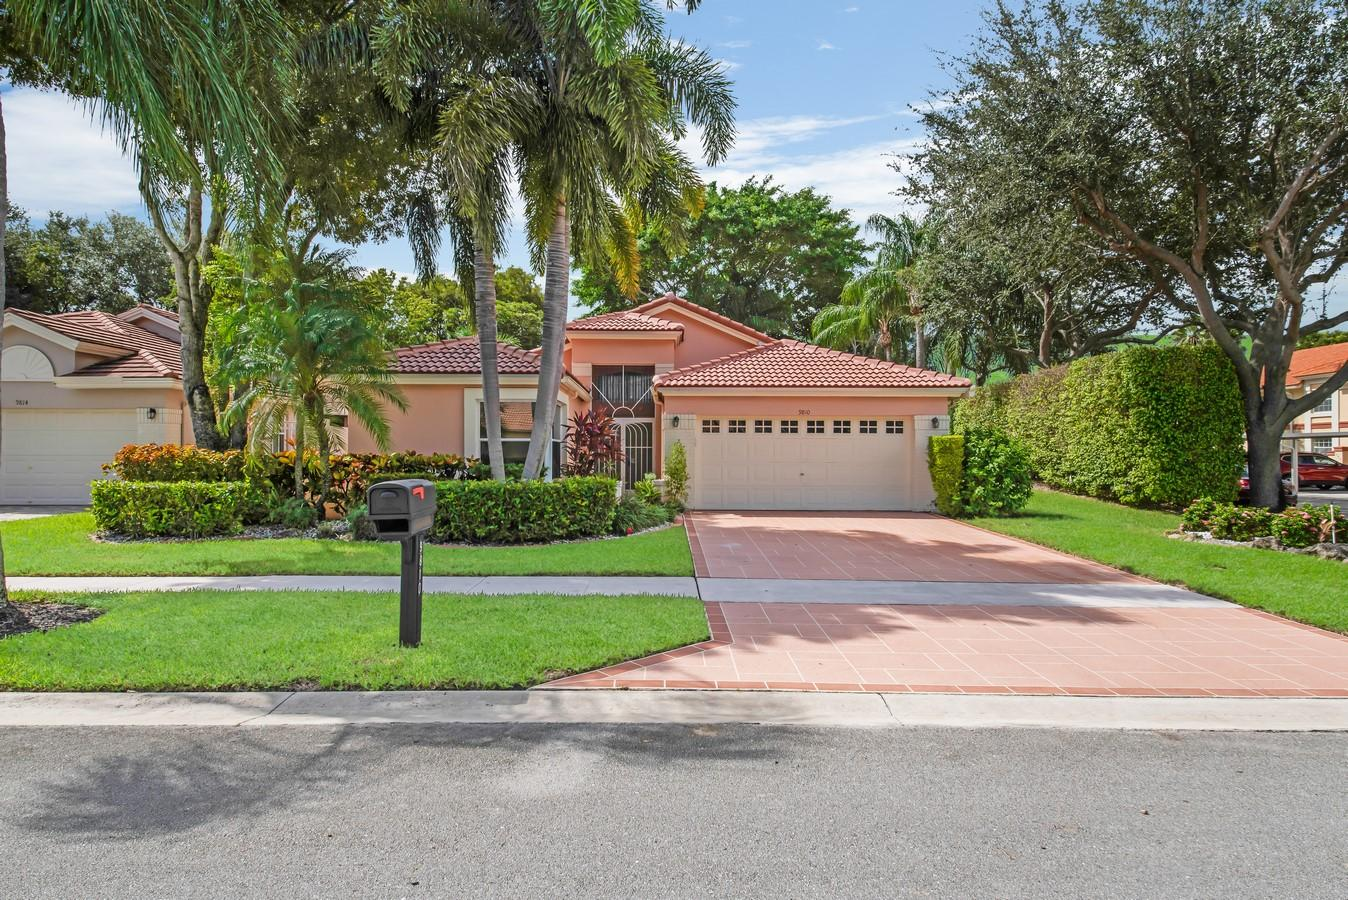 9810 Harbour Lake Circle Boynton Beach, FL 33437 small photo 36